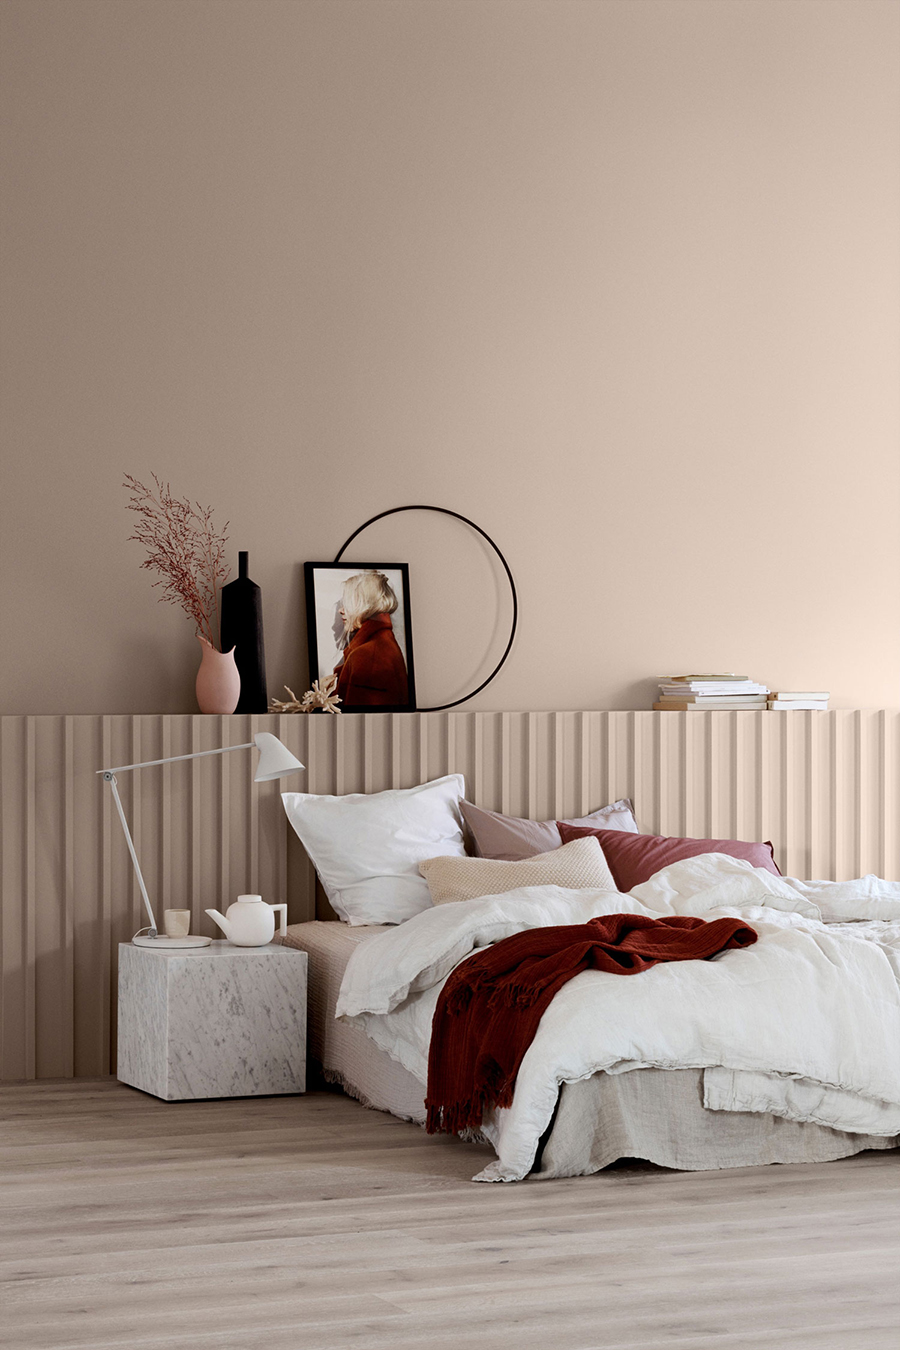 rhythm of life jotun 39 s 2018 paint color trends a merry mishap bloglovin. Black Bedroom Furniture Sets. Home Design Ideas